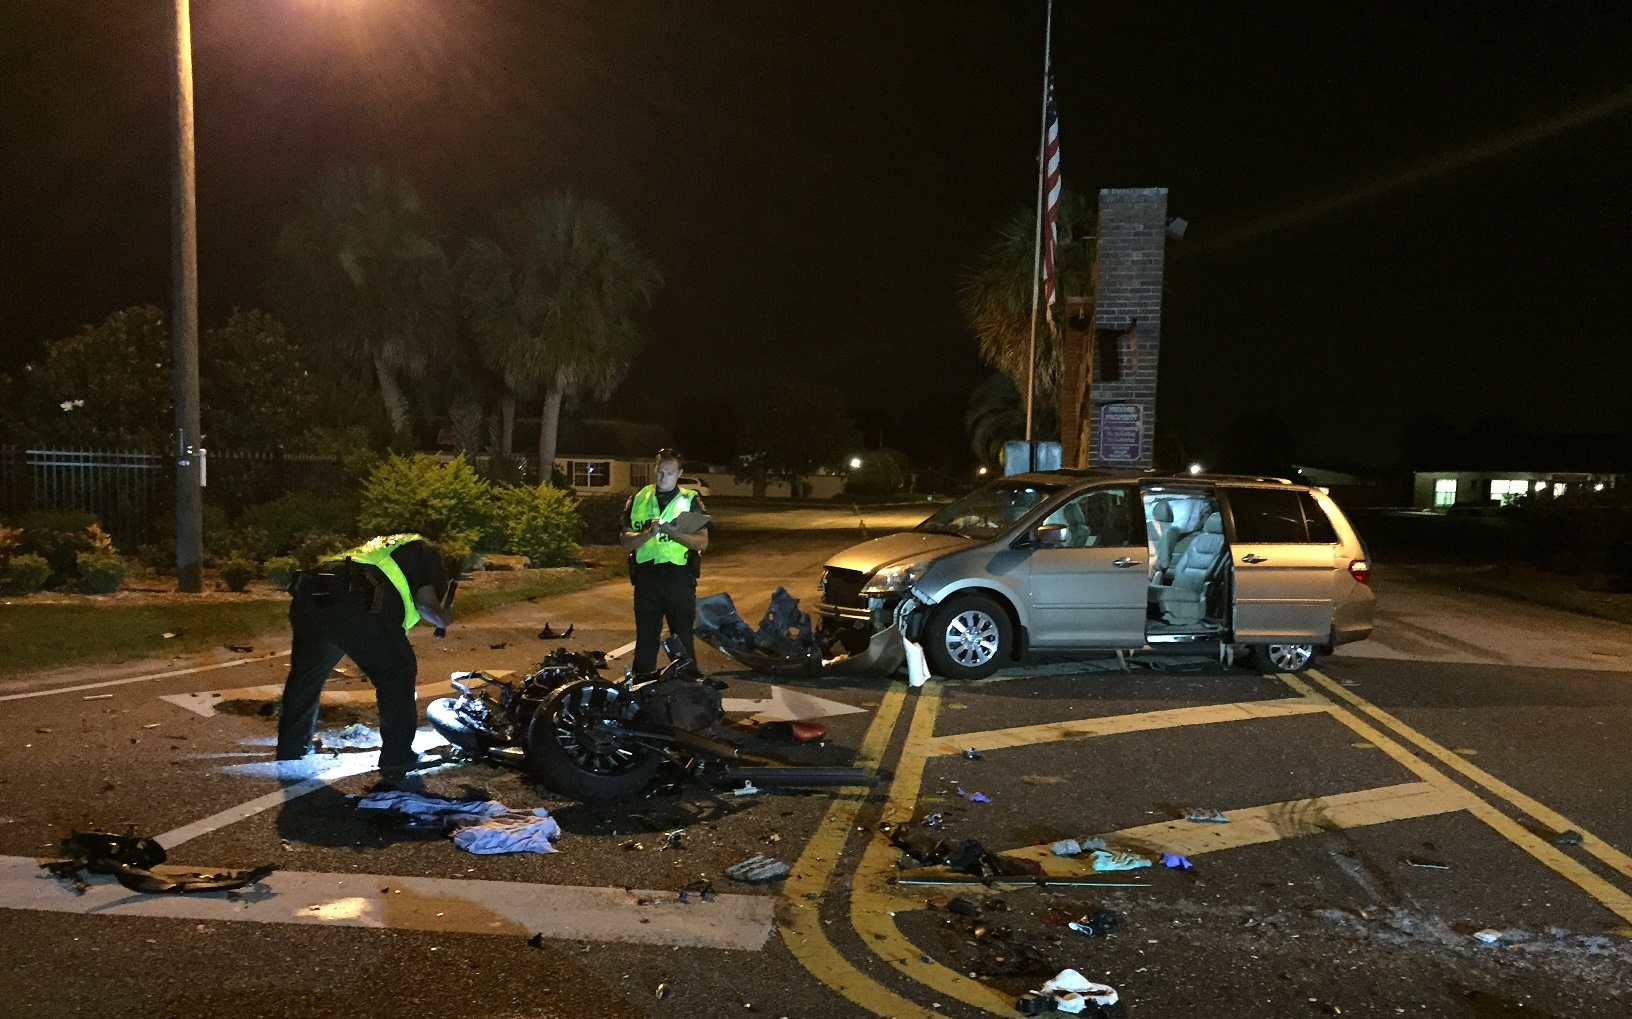 Motorcyclist killed, 4 hospitalized after Haines City crash